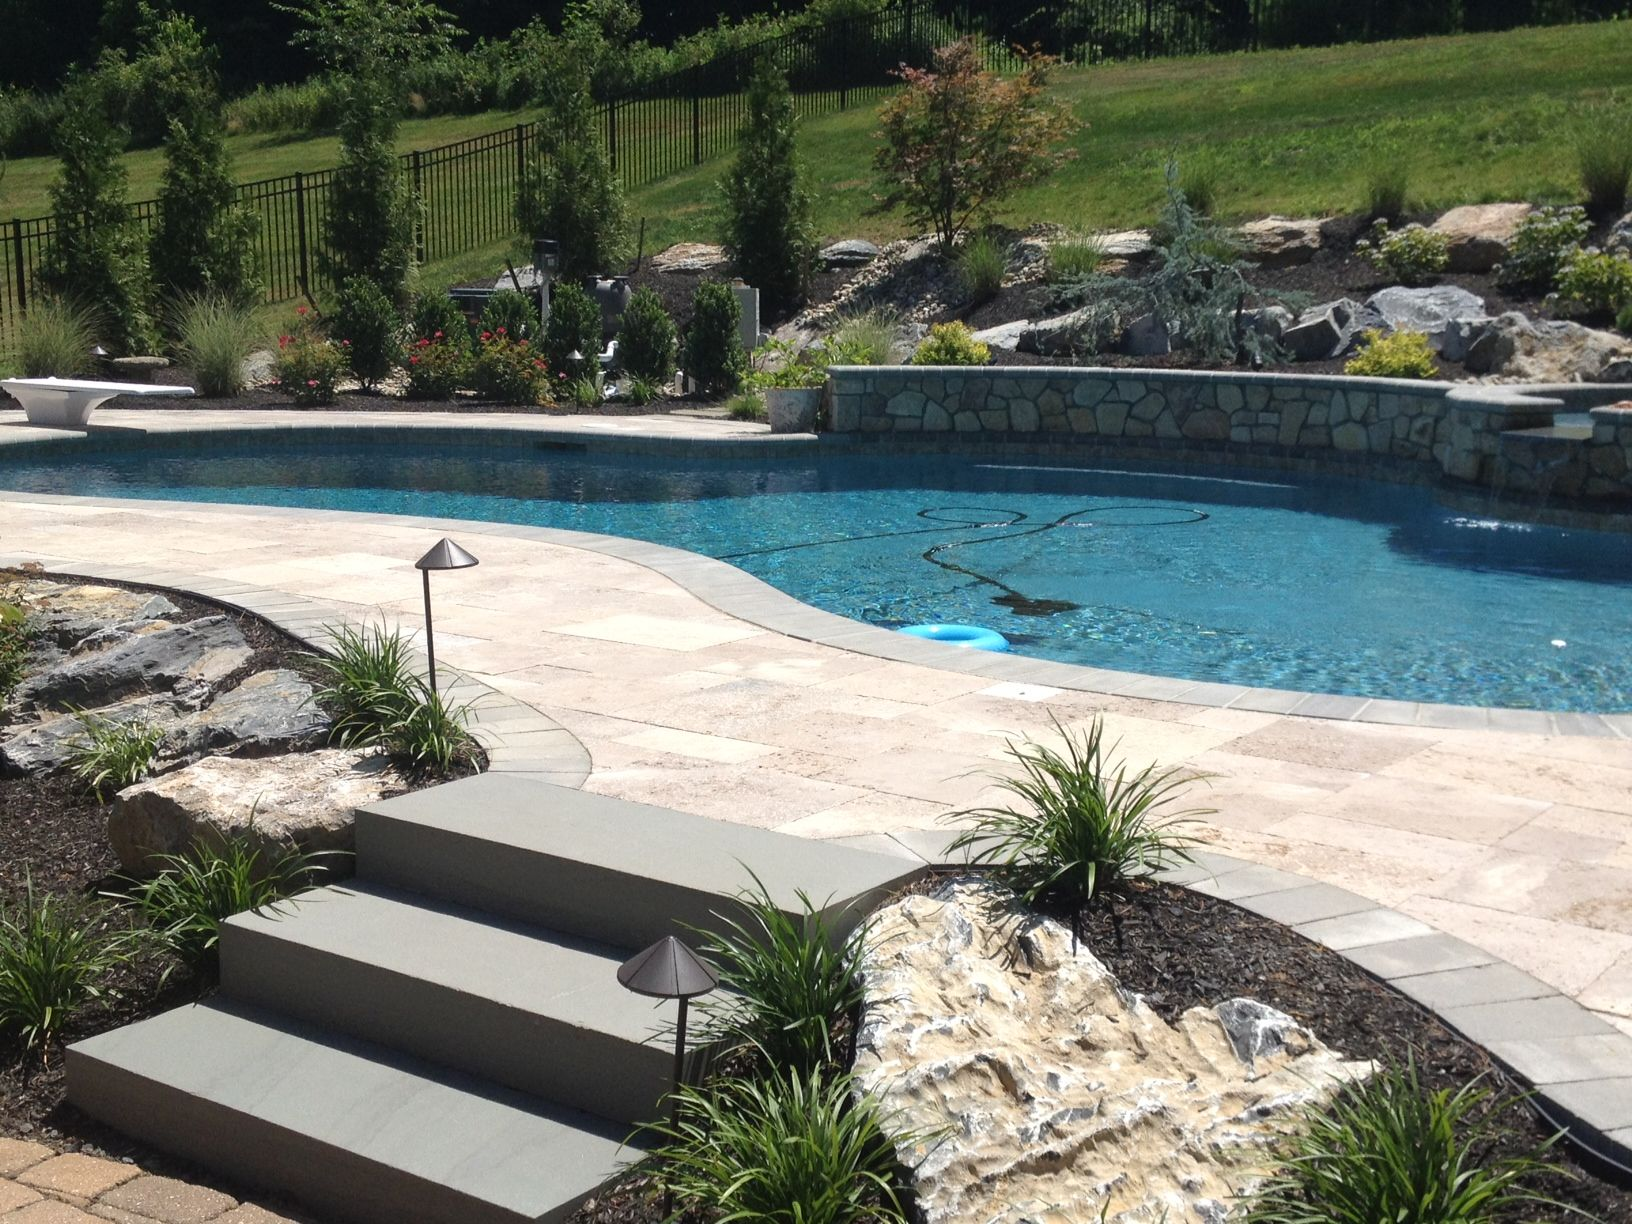 displaying 16 images for landscaping ideas for around pools - Garden Ideas Around Swimming Pools